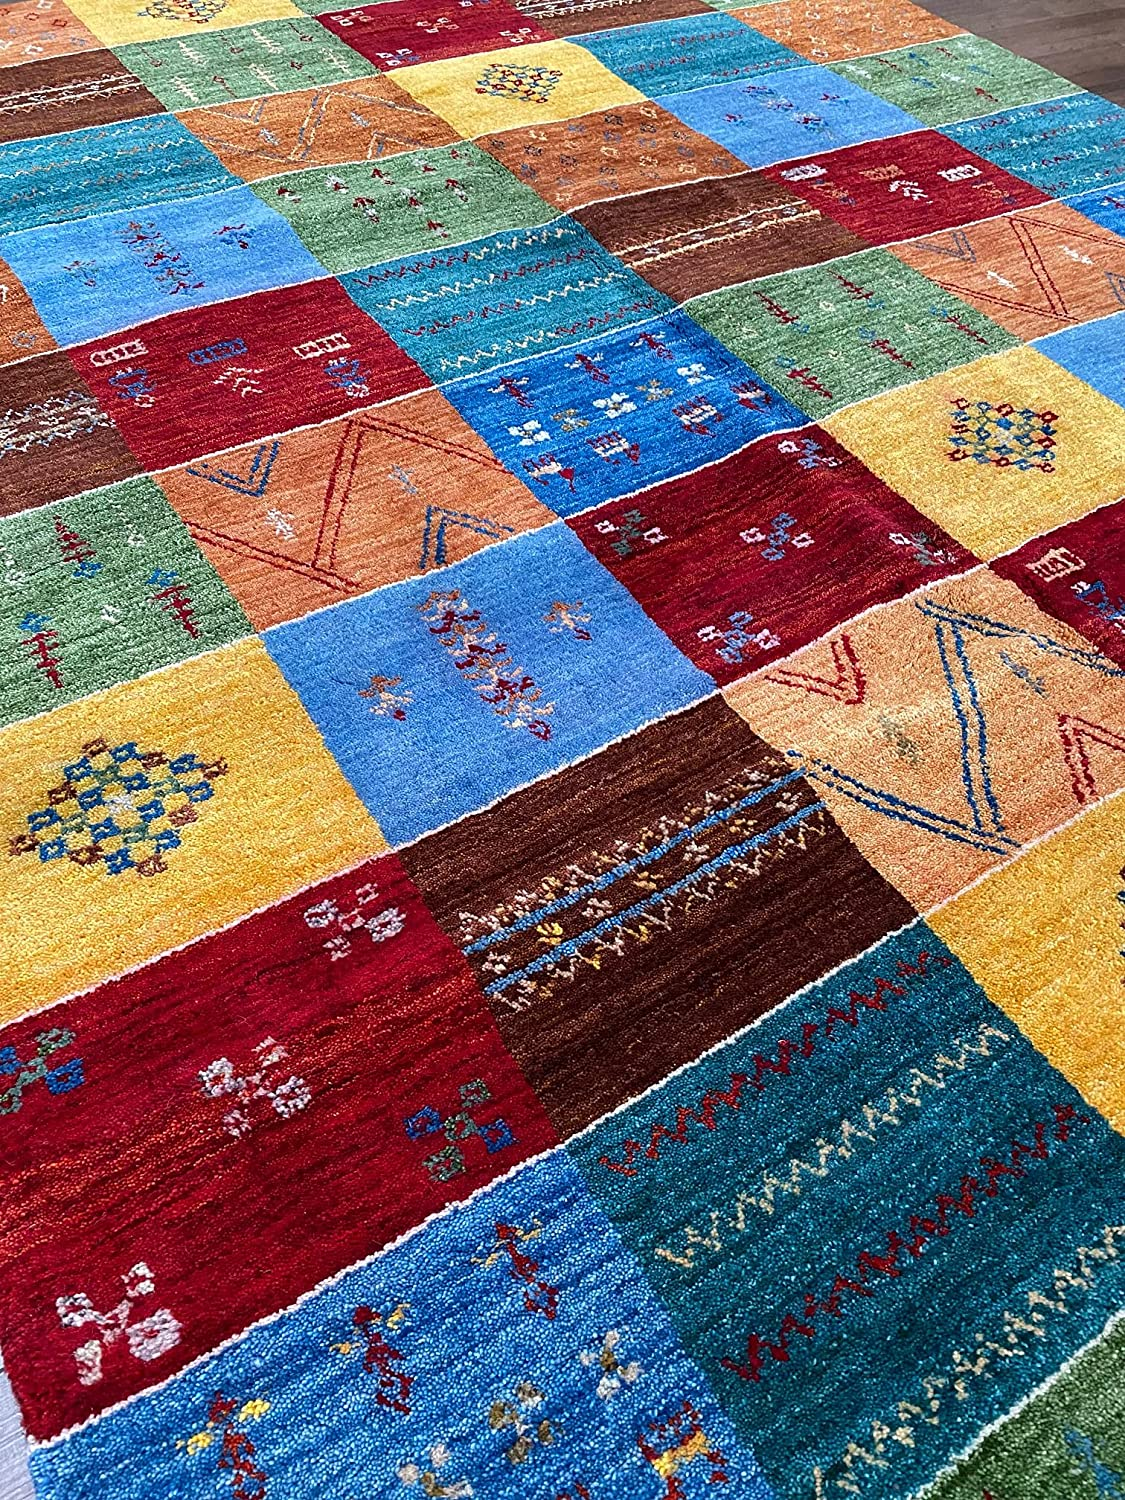 Outstanding Hafez Rug Gallery One of A Handmade Colorful Manufacturer direct delivery Tribal Ch Kind